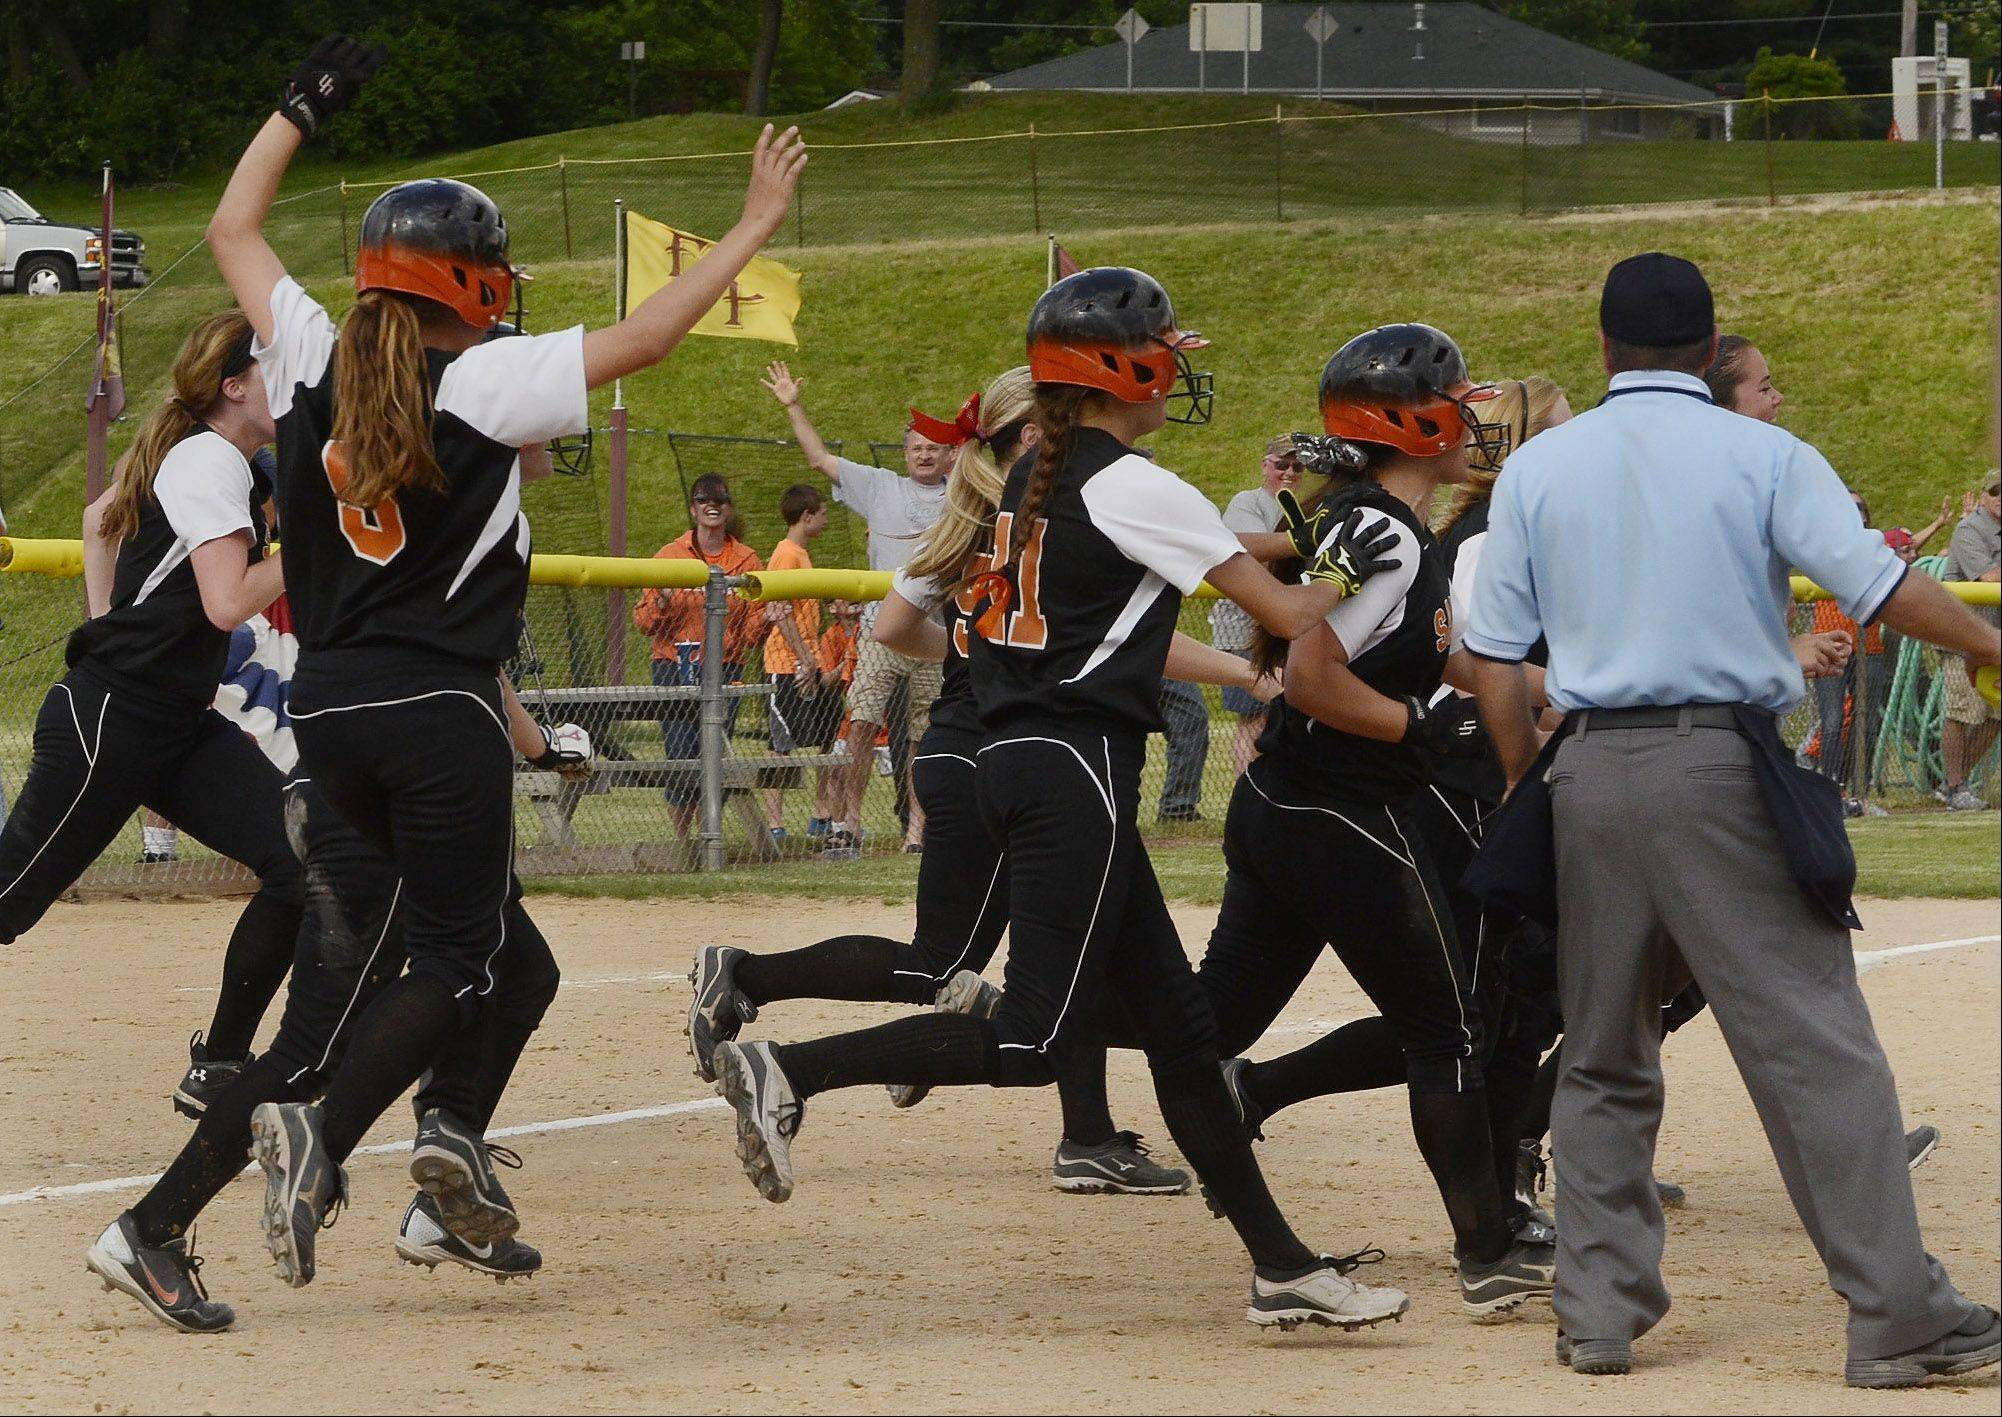 St. Charles East players pour out of the dugout after the win over Barrington.